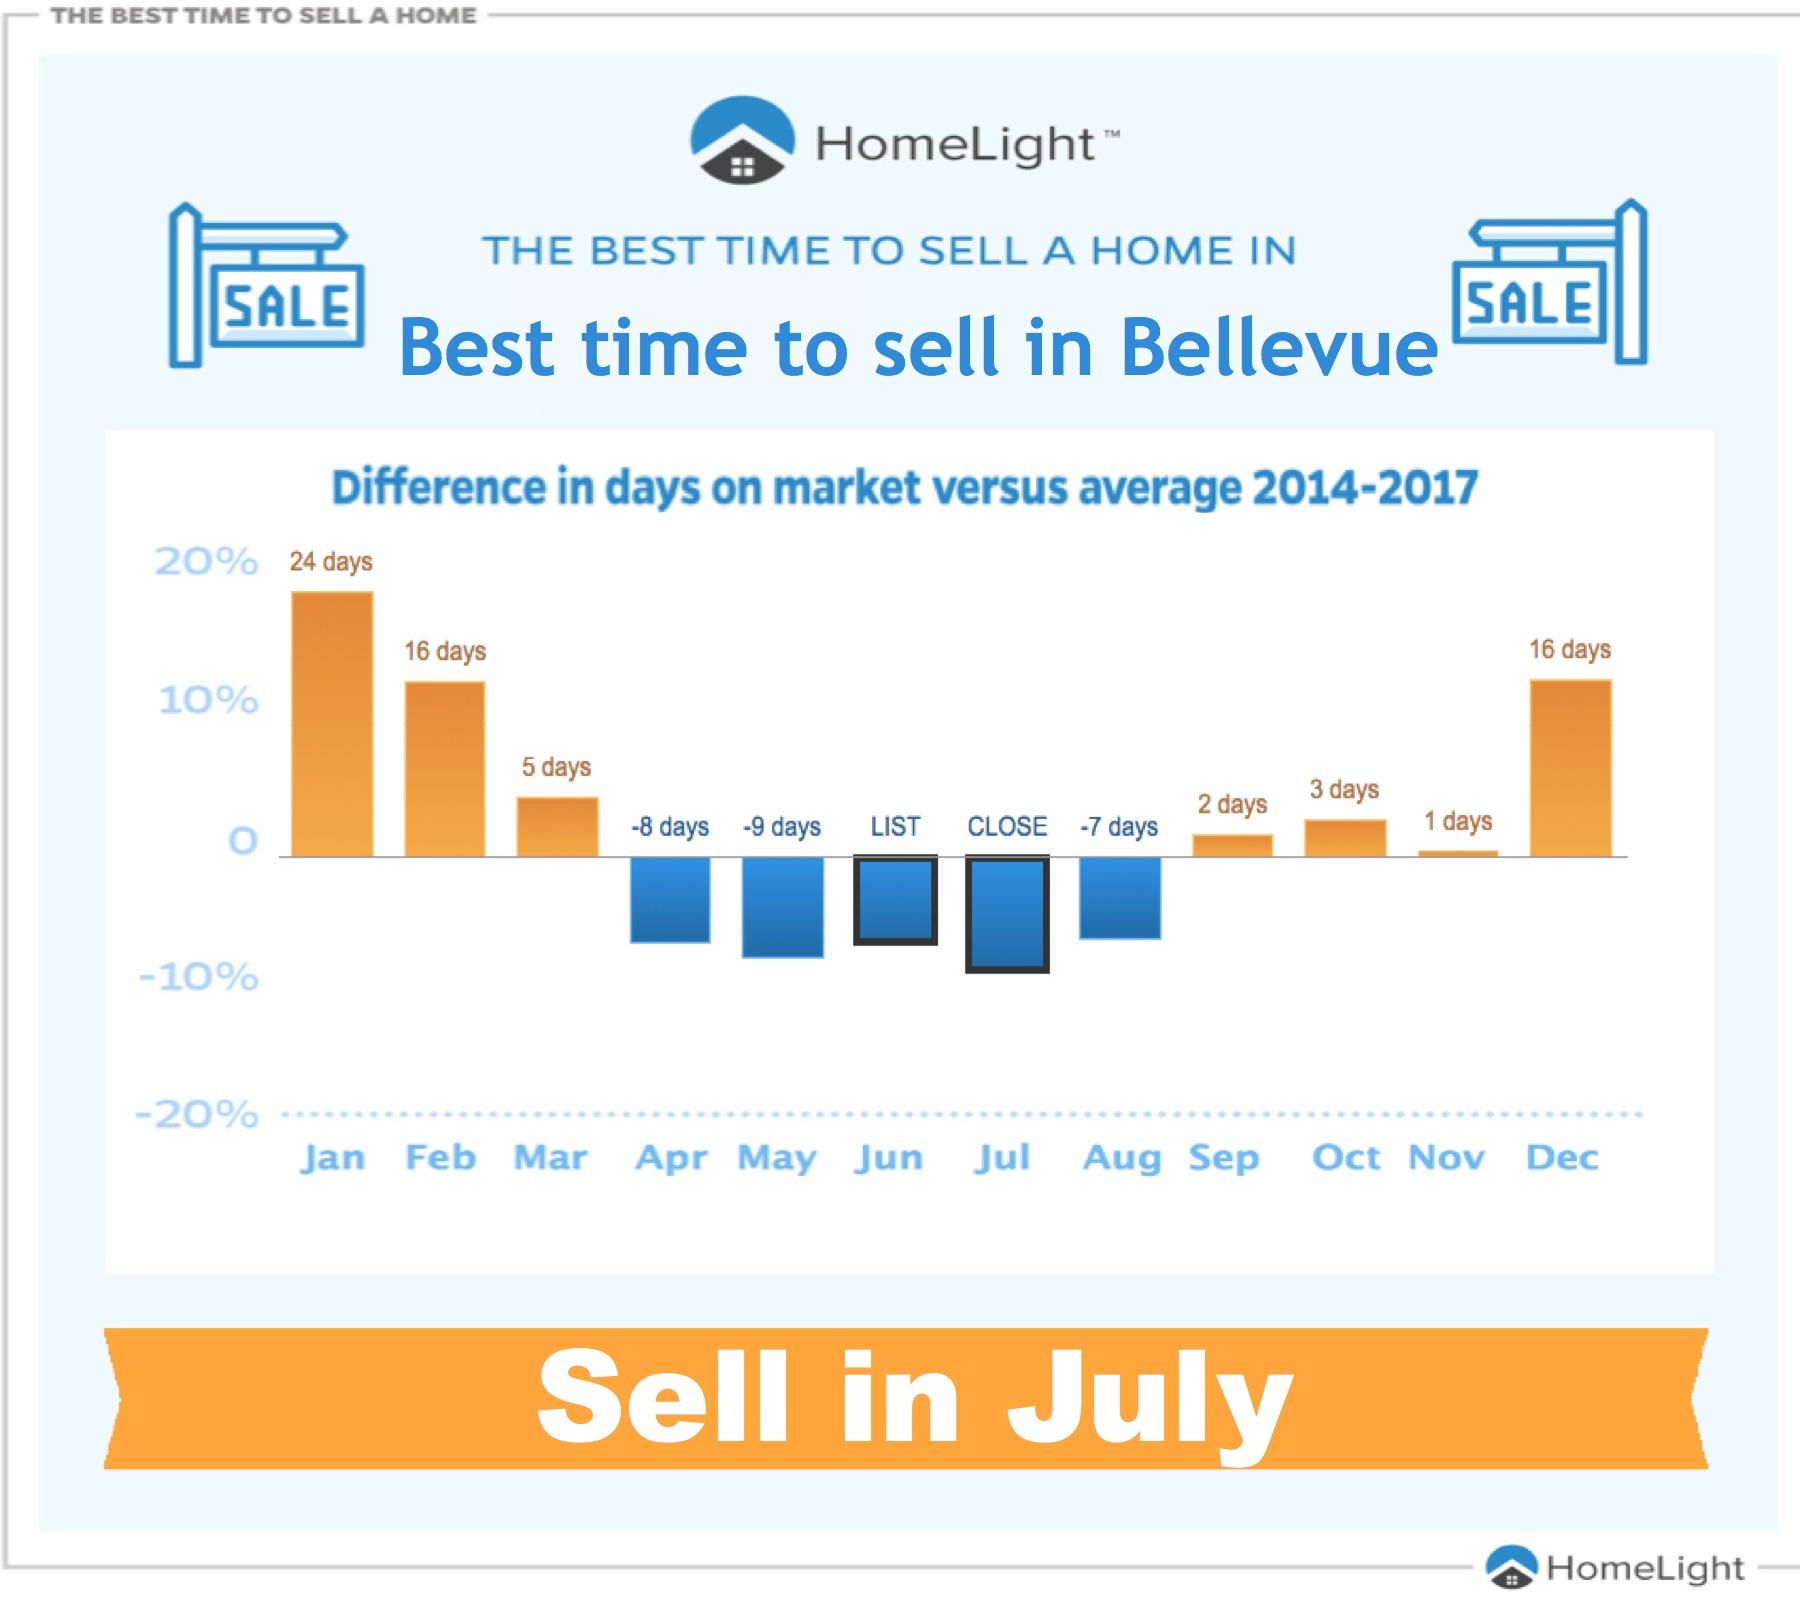 Best time to sell in Bellevue